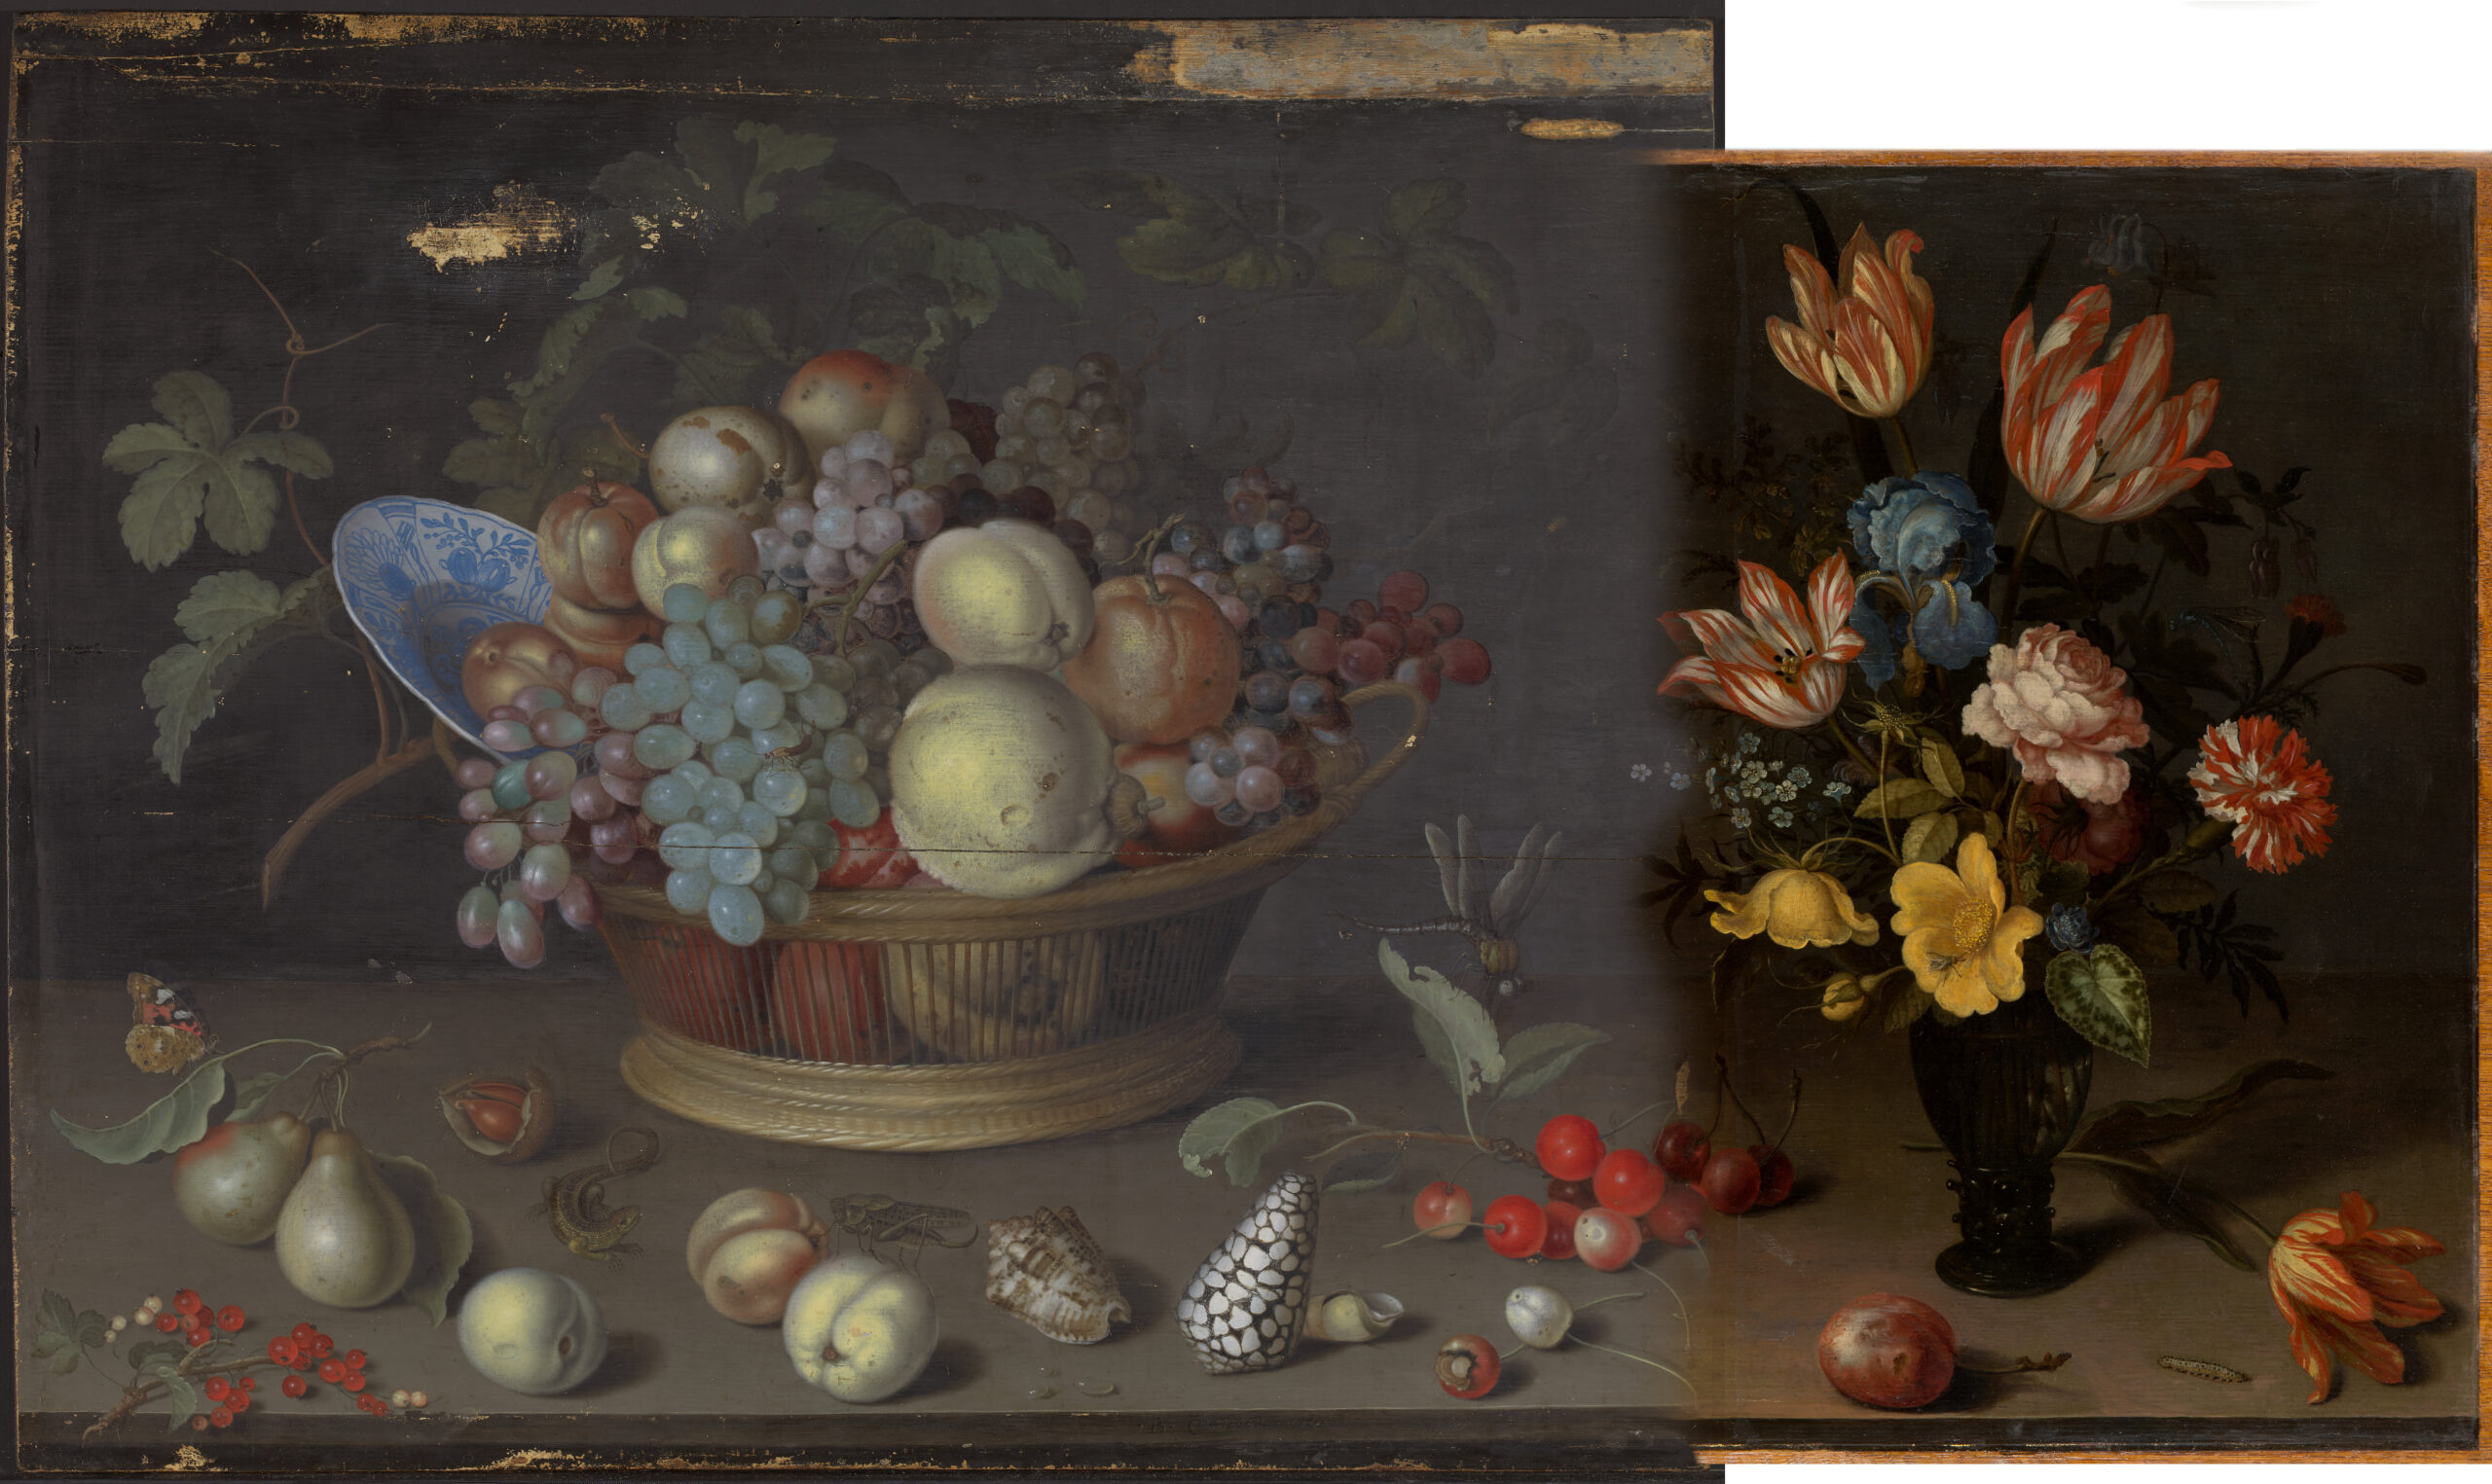 7. Digital reconstruction of the original state of Still Life with Fruit and Shells and Still Life with Flowers, by Vidar Ibenfeldt